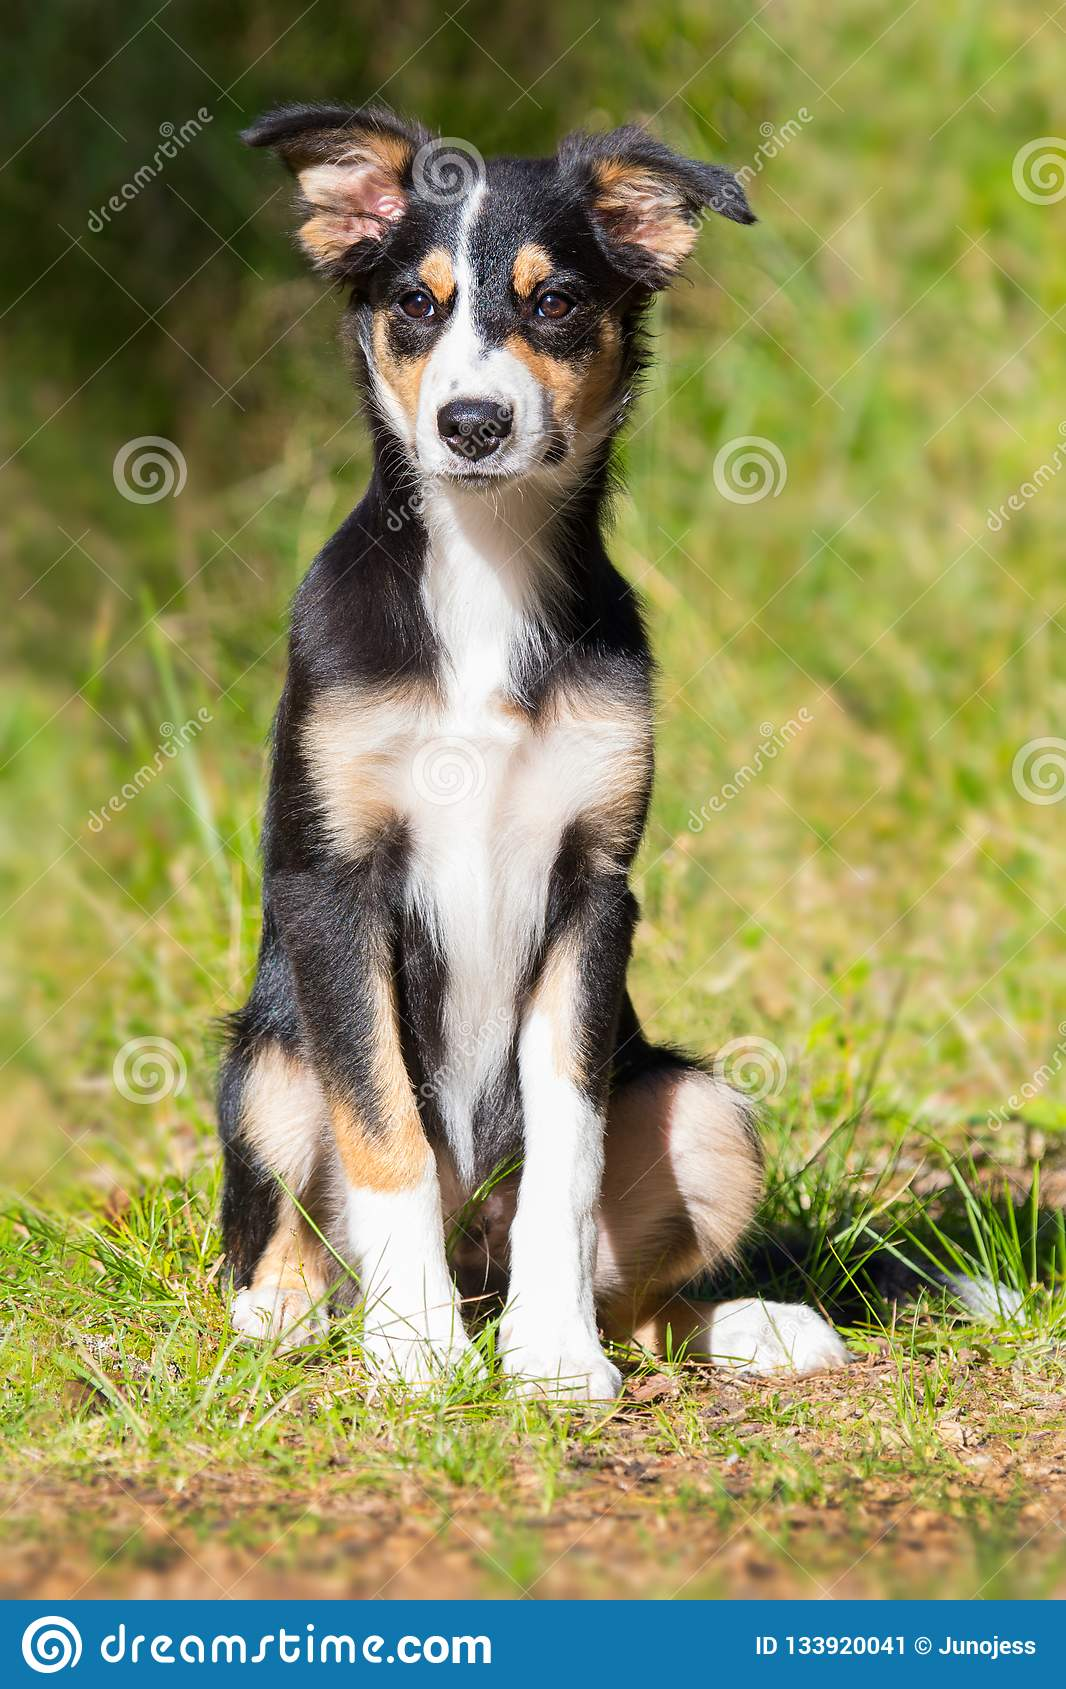 Young Tricolor Border Collie Dog Stock Image - Image of canine